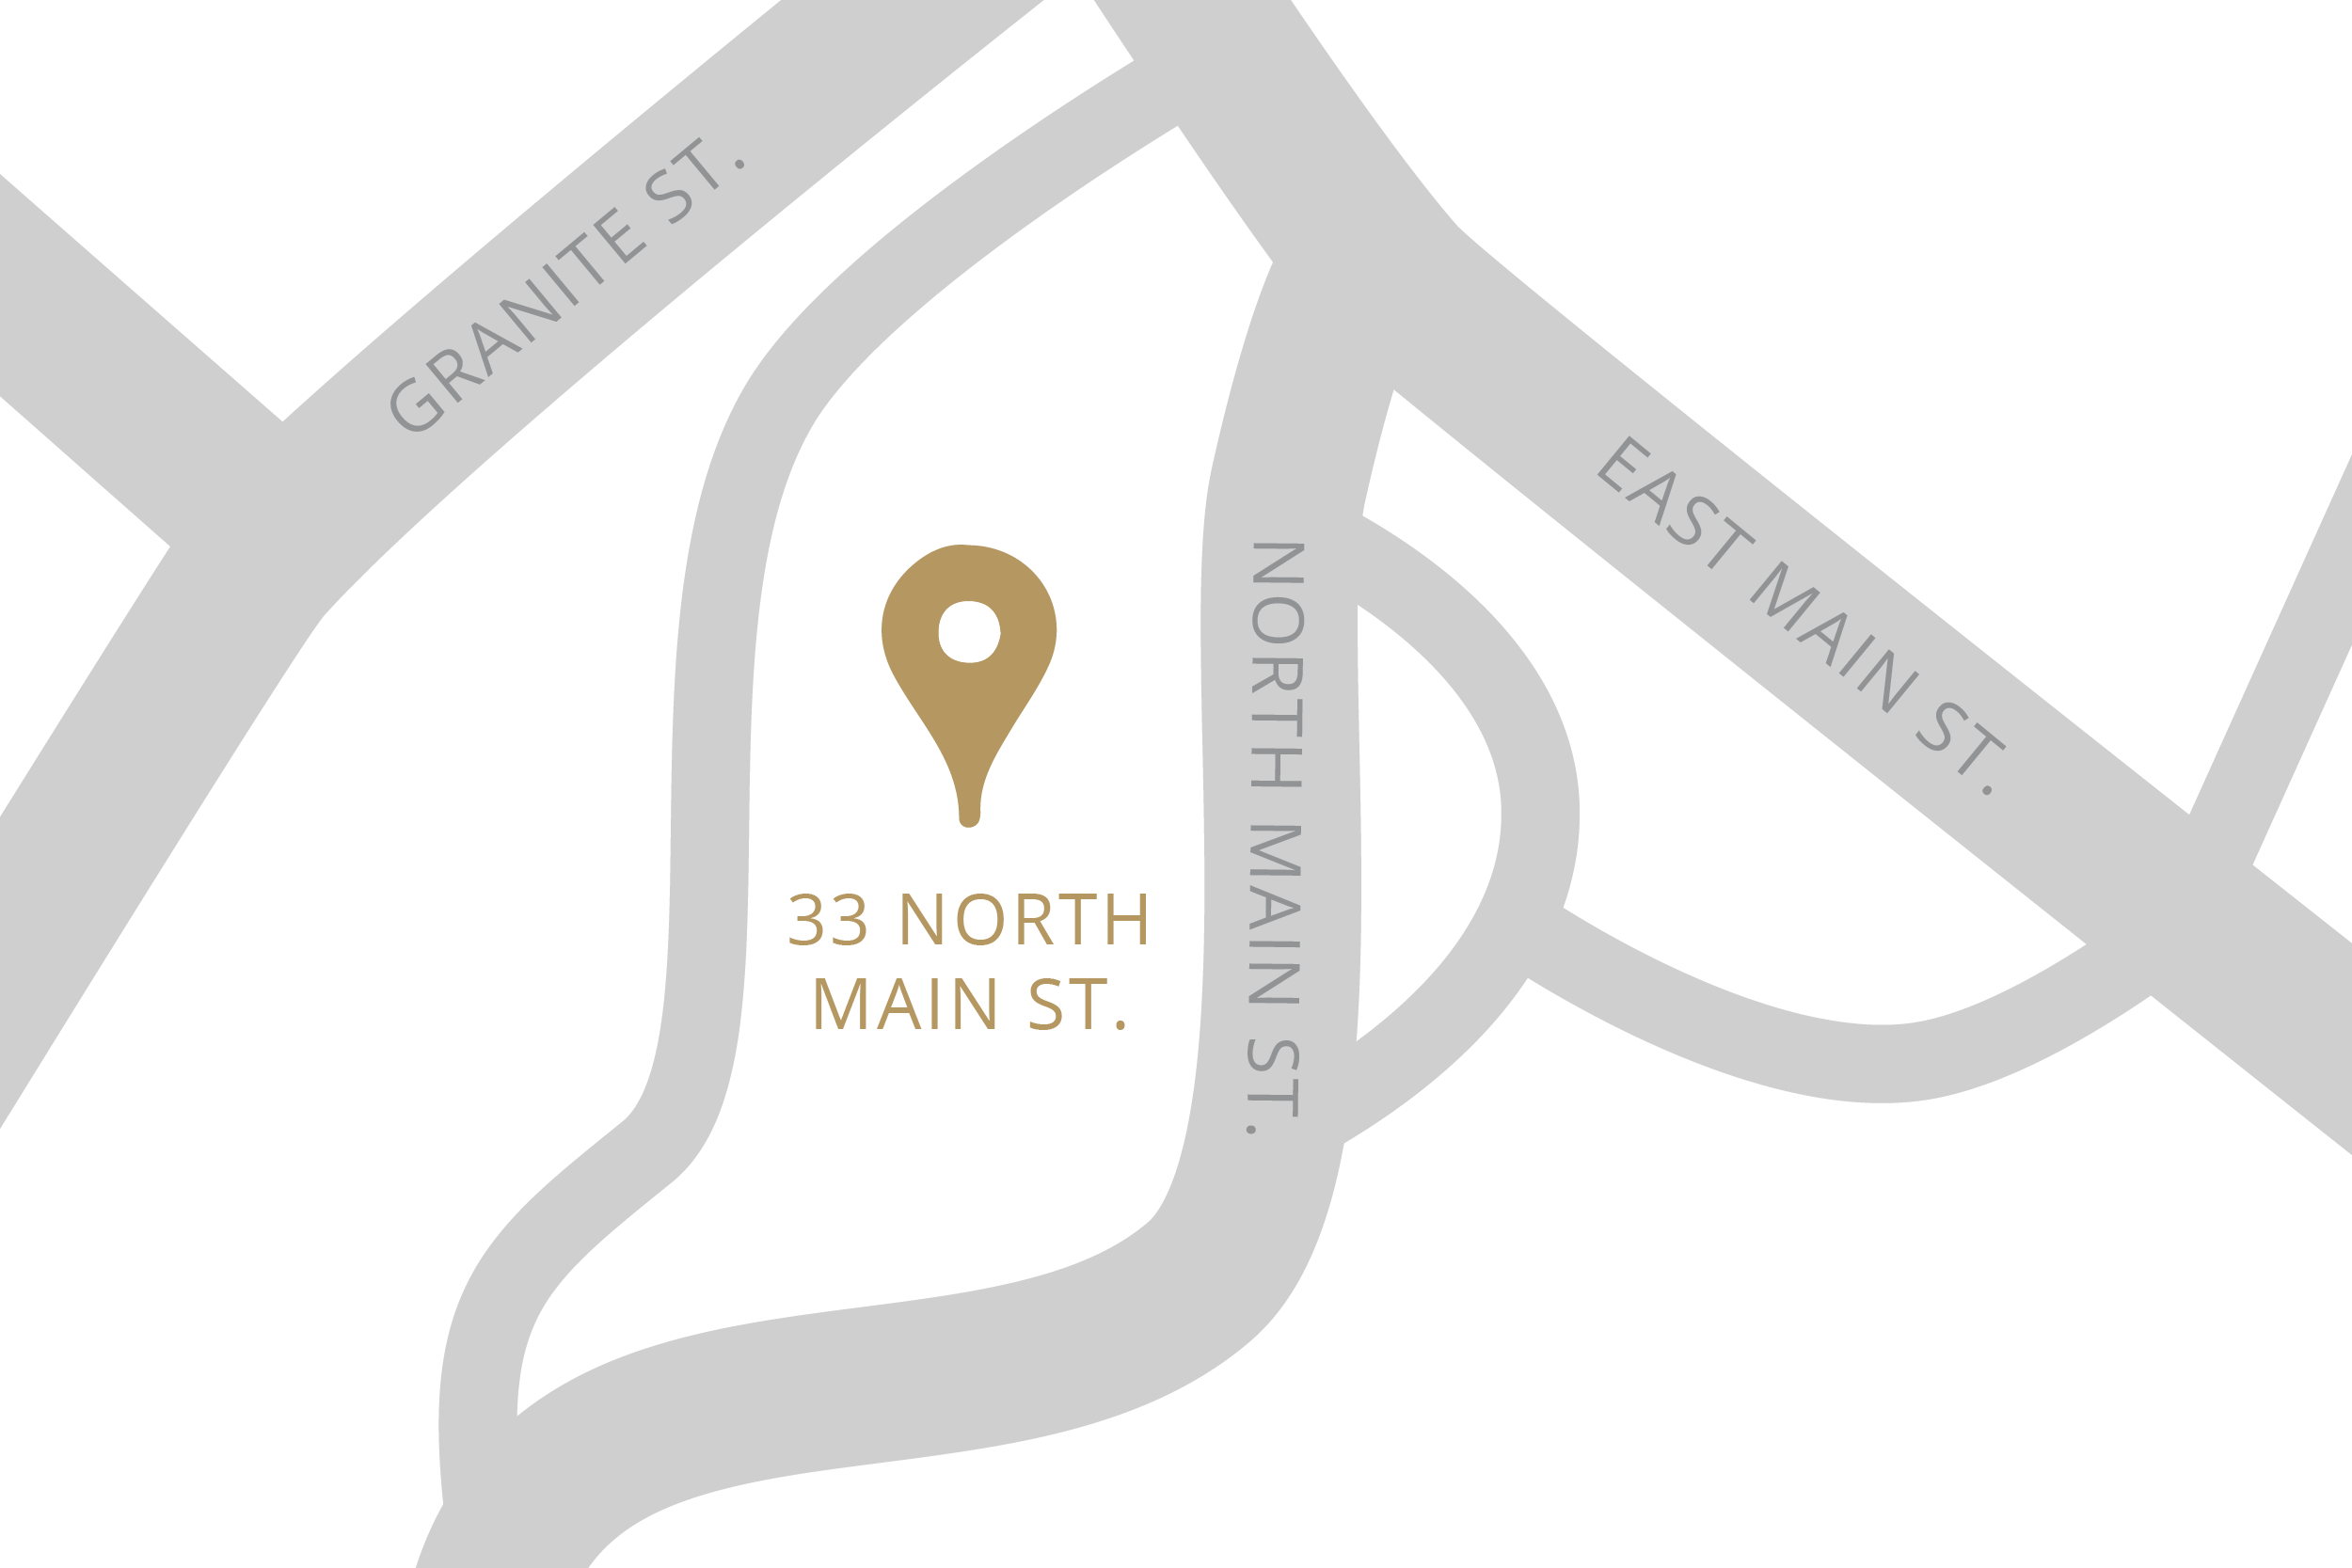 PAPAYA Living is located at 33 North Main St. in Ashland, OR